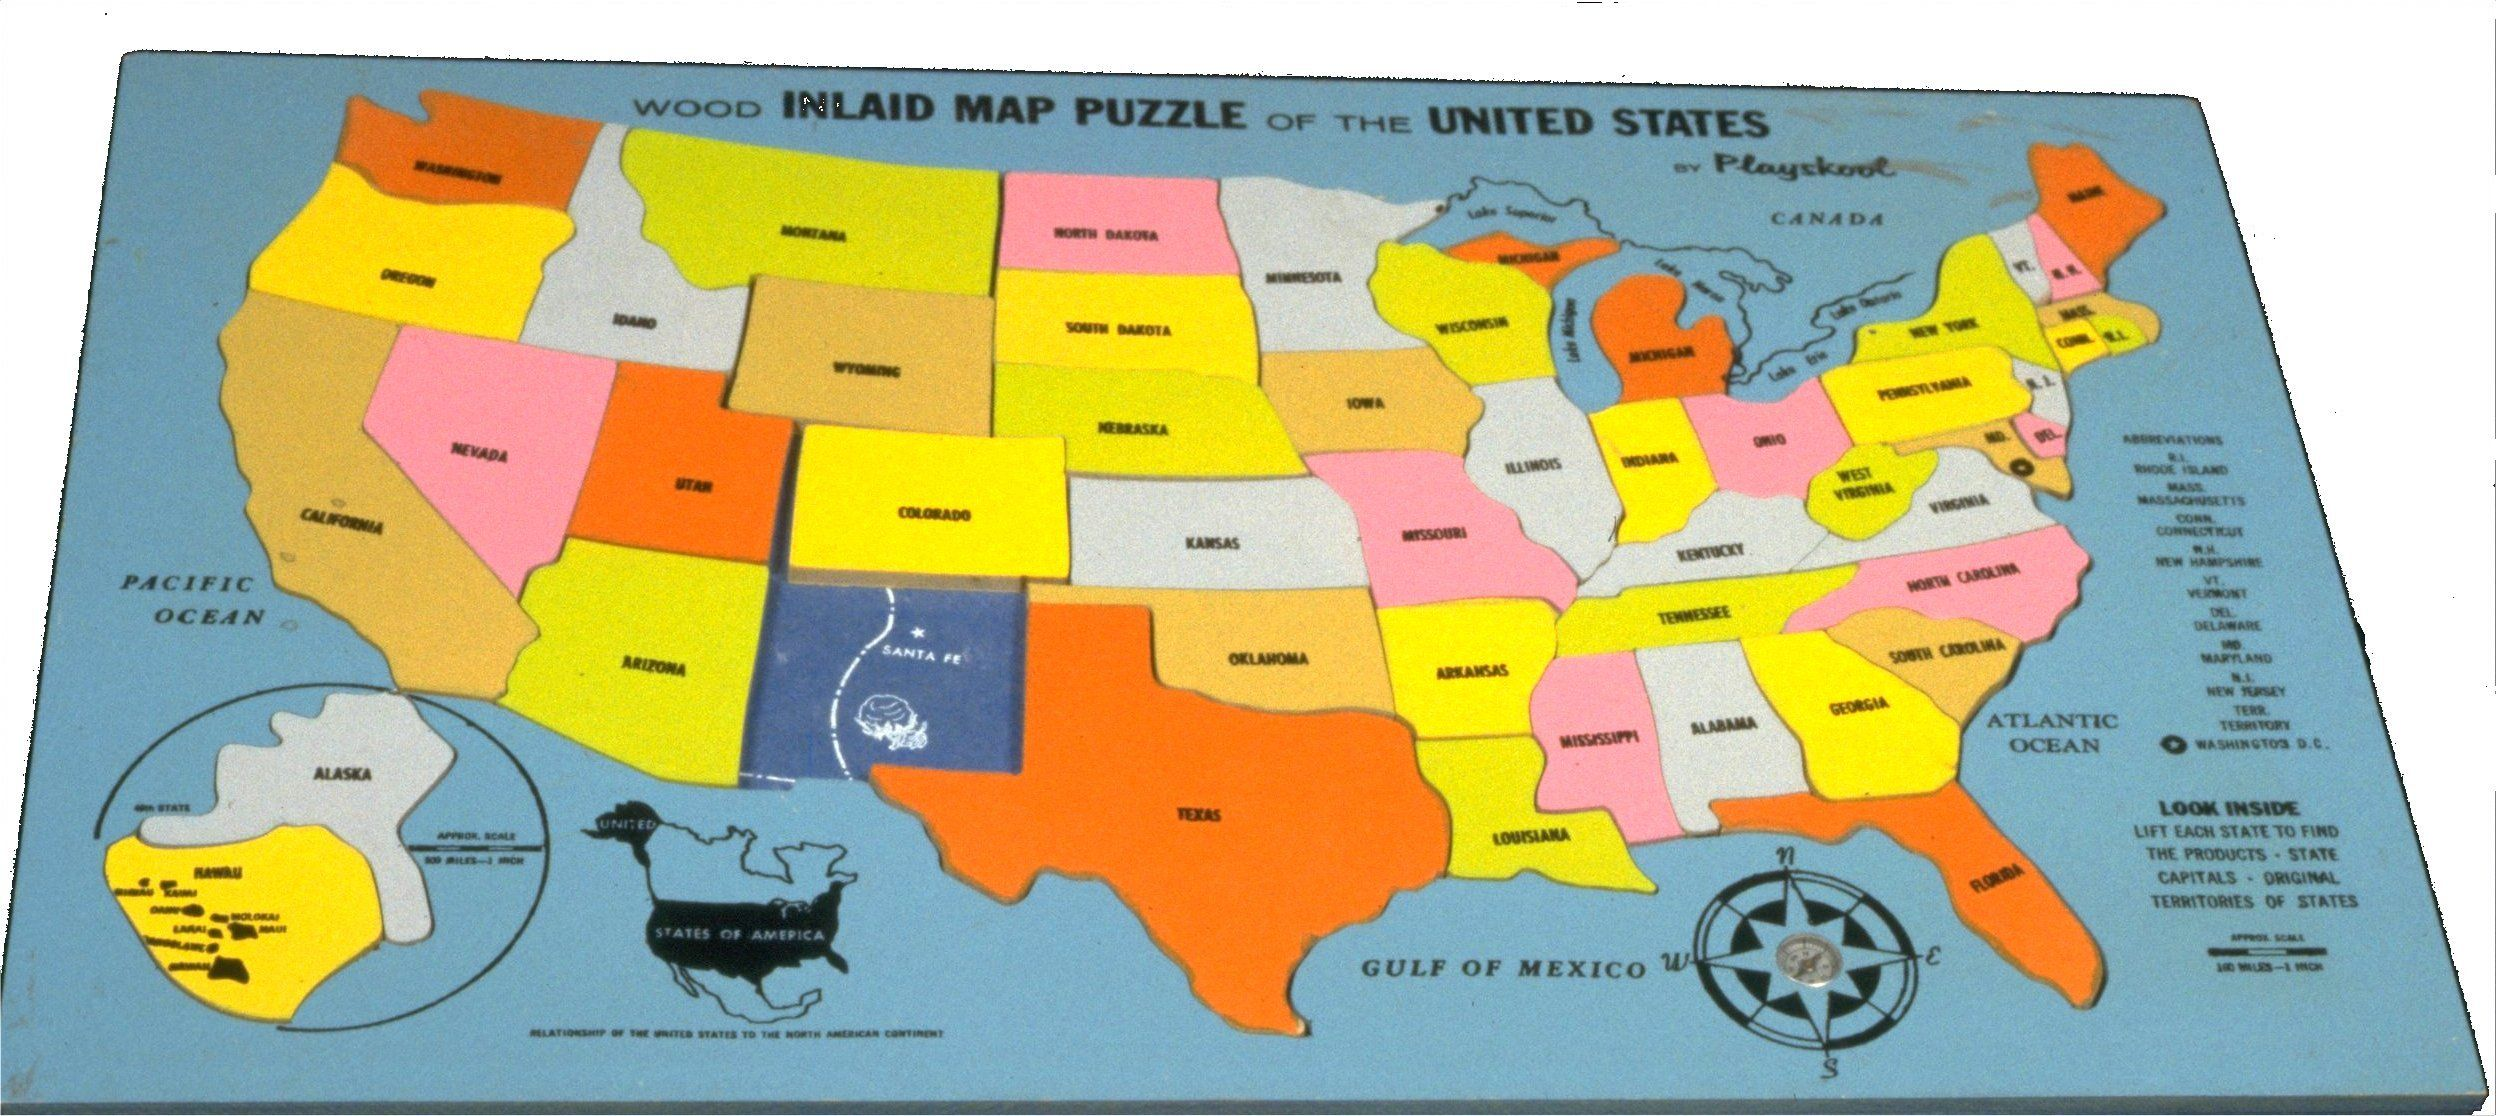 map of the united states puzzle Bing Imagesi did this